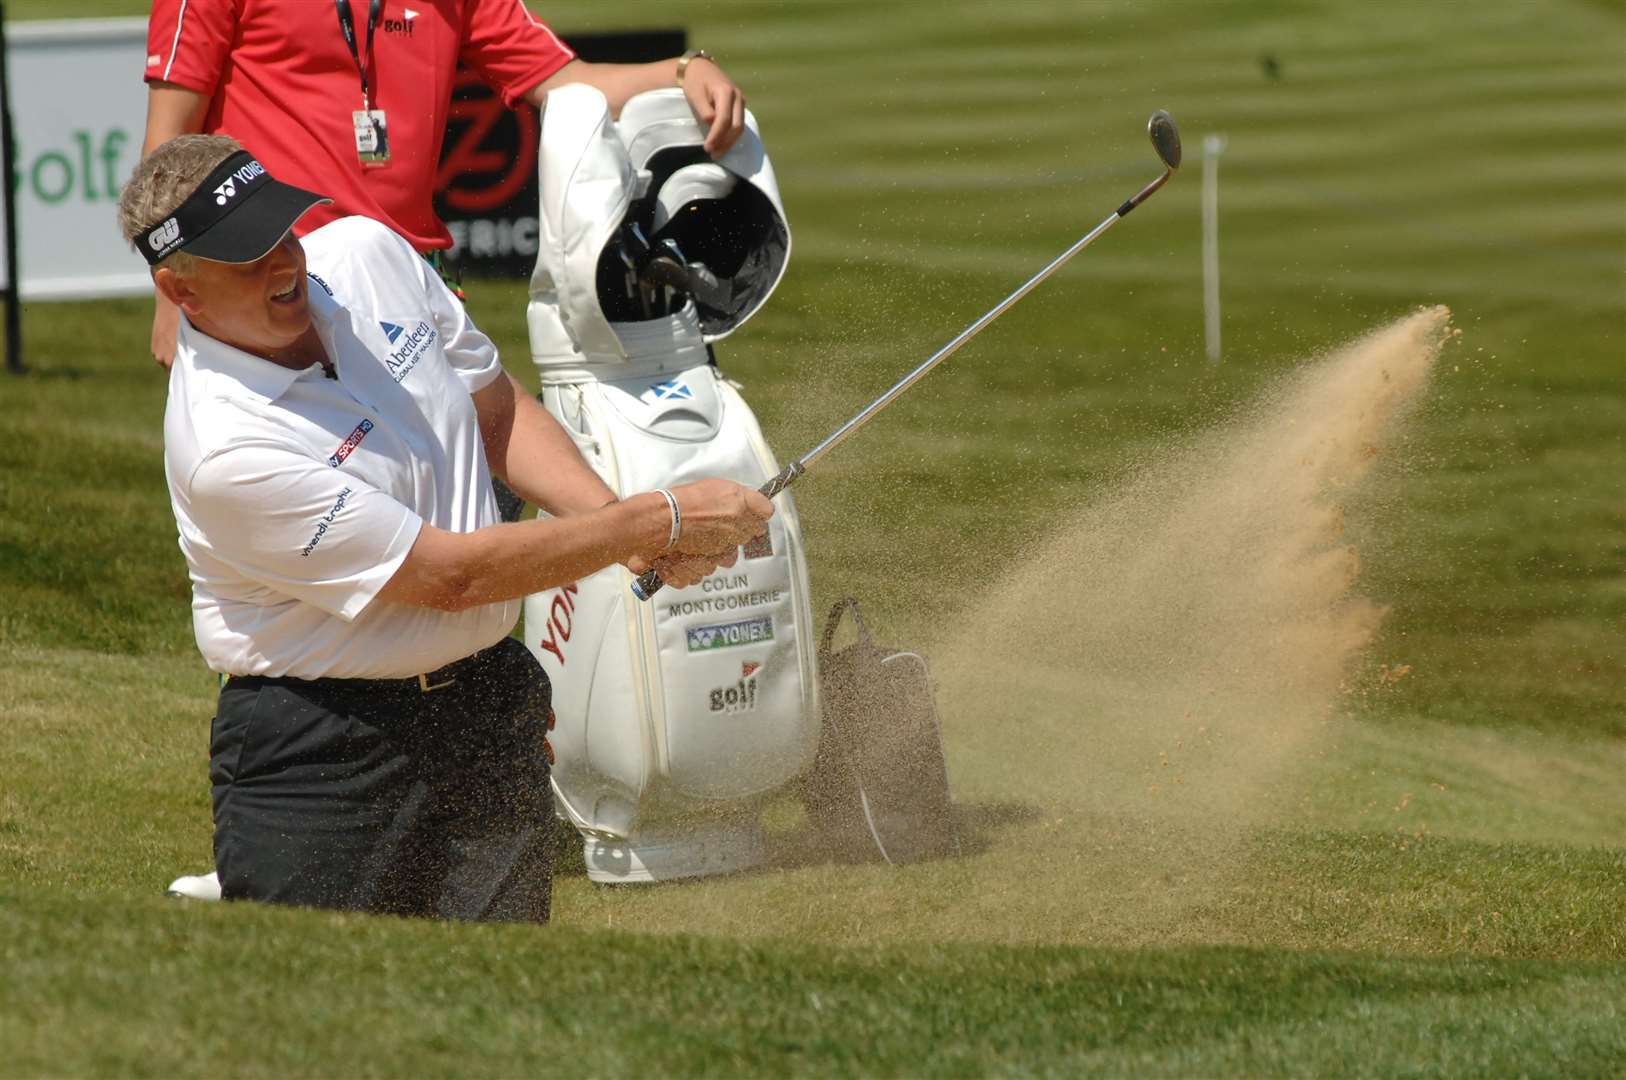 Canterbury Golf Club's Richard Wallis will be up against the likes of Colin Montgomerie at a European Tour pro-am event this week Picture: Nick Johnson